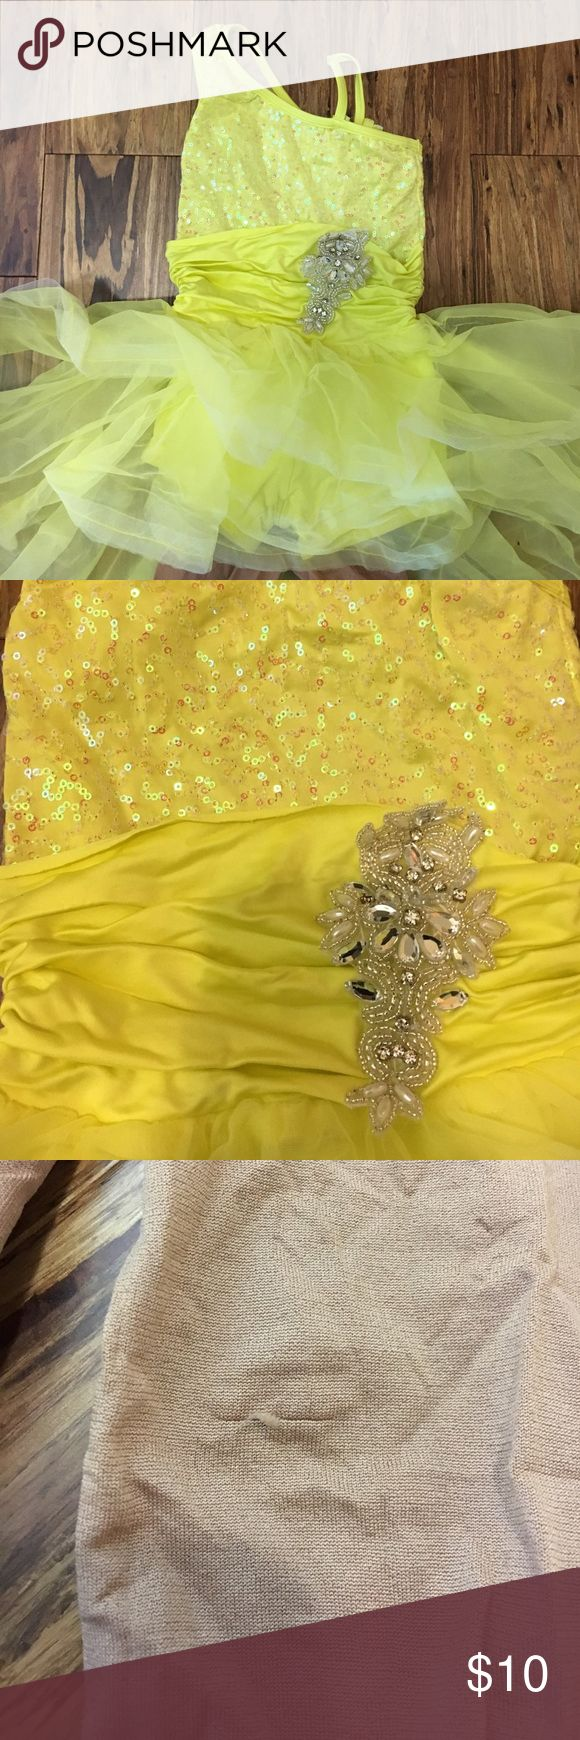 Dance costume yellow sequin dress and tights This is a bundle of a dress and a pair of nude tights. This can be worn for a fun dress up play or a Halloween costume. The dress has a tule skirt with attached shorts underneath. It's stretchy, but I'd suggest it would best fit a 3-5 y.o. Both of these have only been worn twice (dressed rehearsal and recital). The tights have a tiny pull (see pic) that's not really noticeable when worn. Dresses